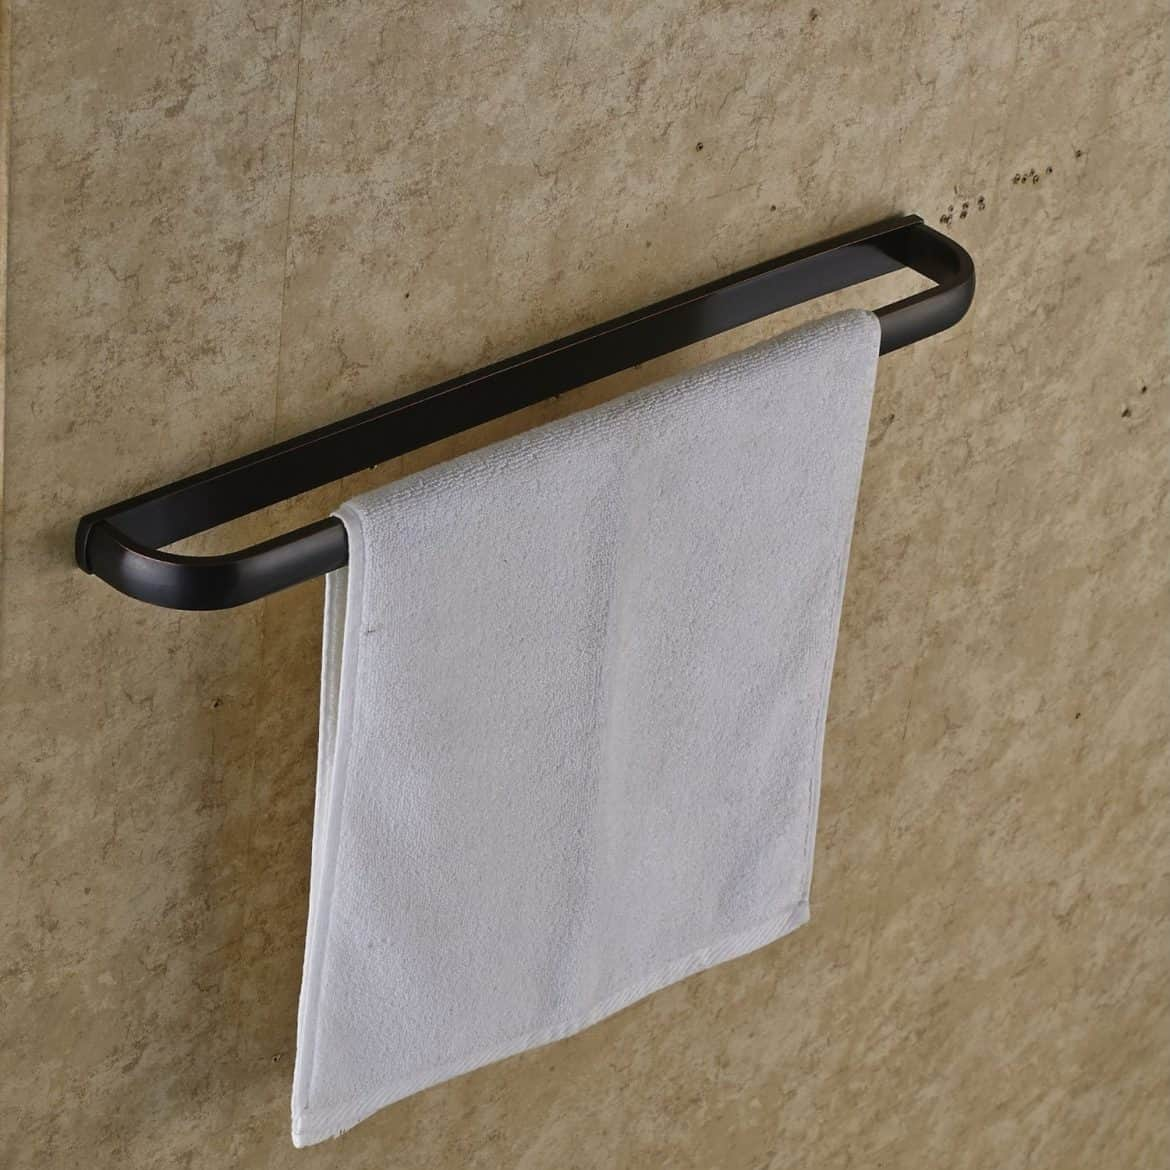 Bathroom Towel Rack Ideas.17 Best Bathroom Towel Rack Ideas And Towel Hangers For Your